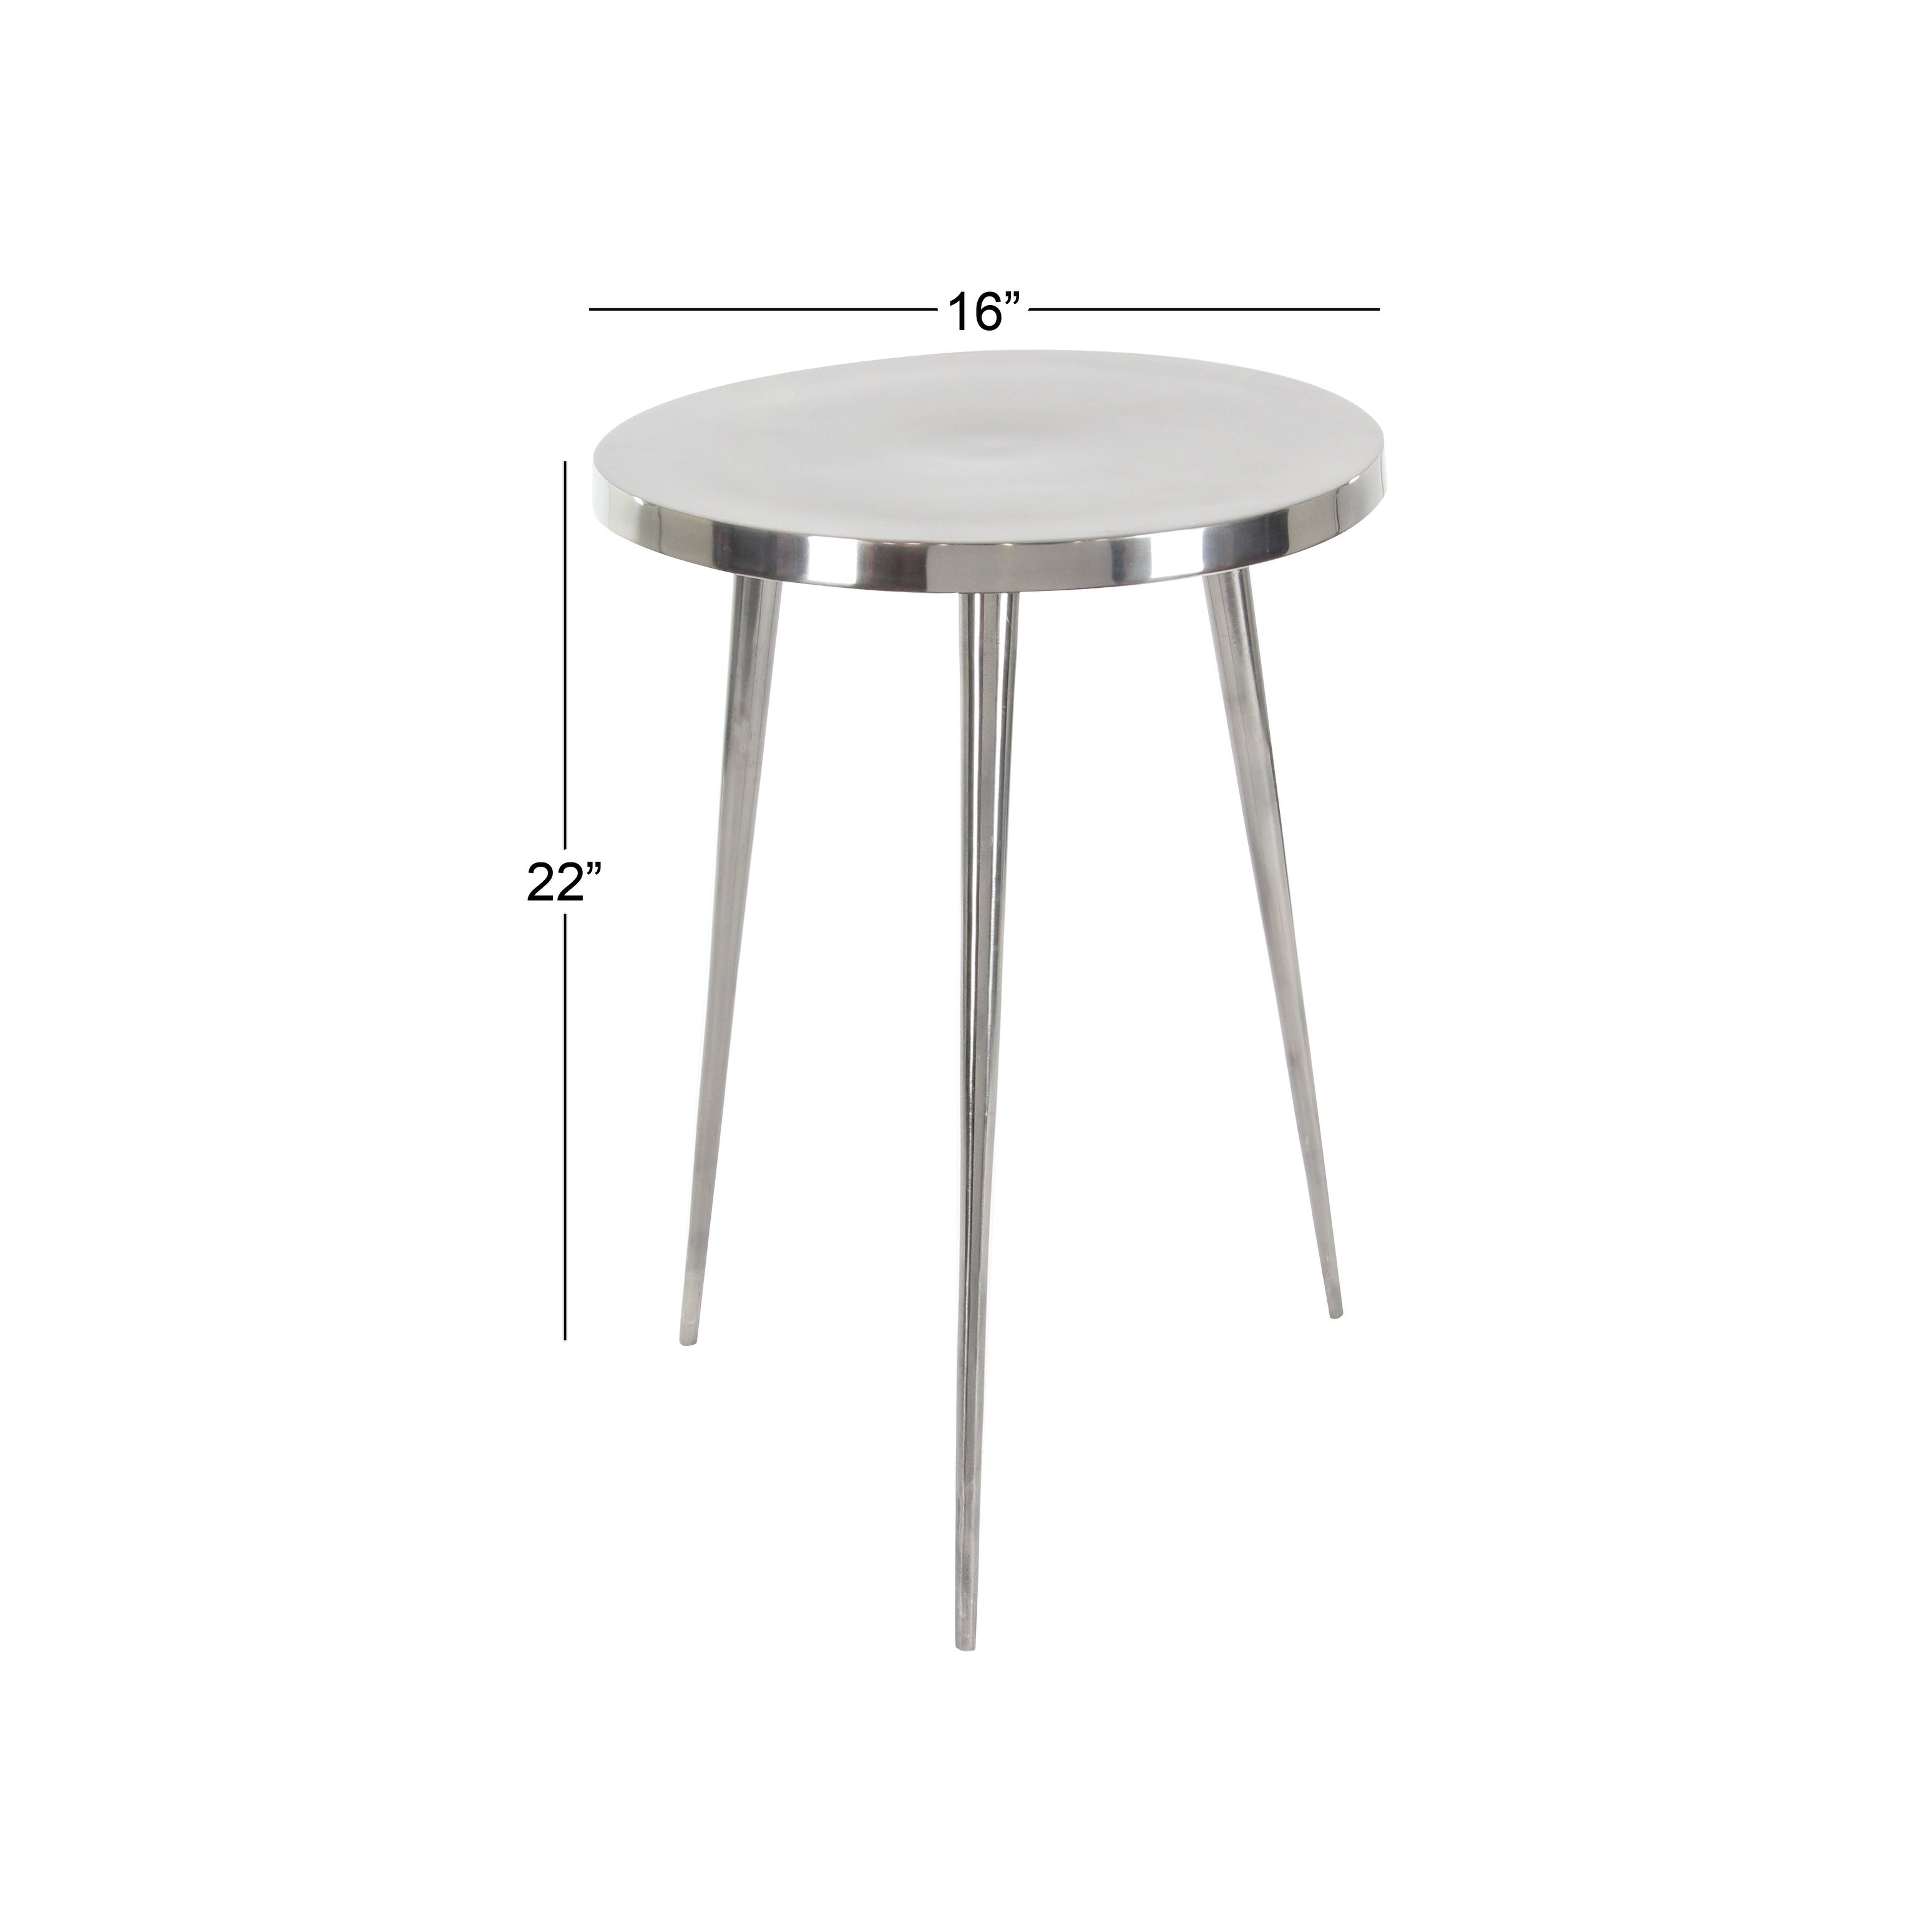 contemporary inch round aluminum accent table studio free shipping today monarch hall console dark taupe fabric coffee clothes organiser covers for bedside tables high end lamps